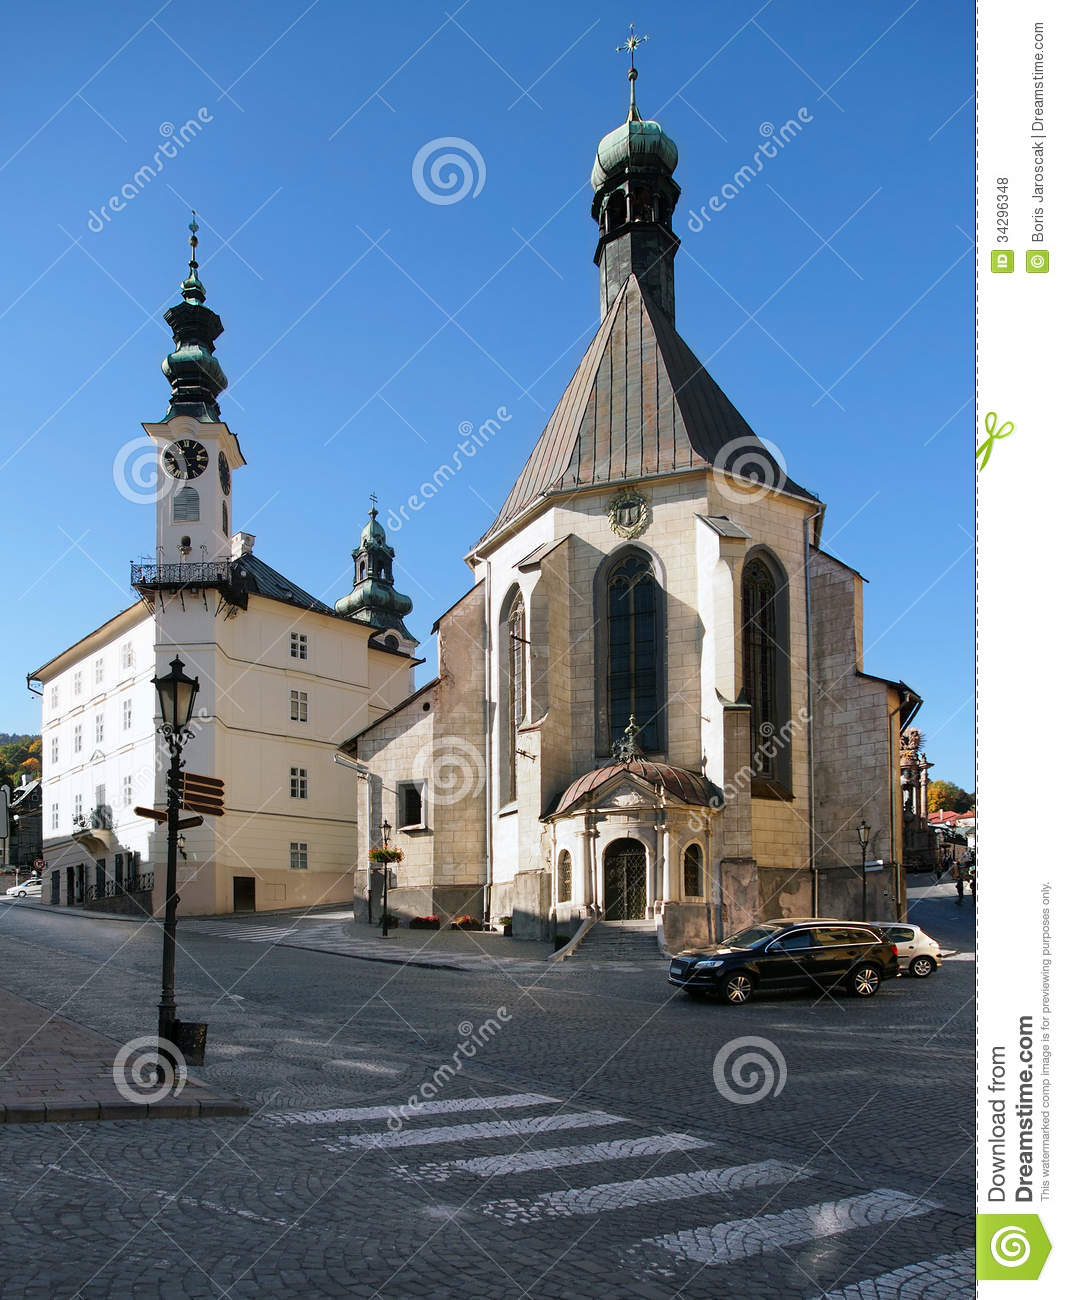 Town hall and Church in Banska Stiavnica